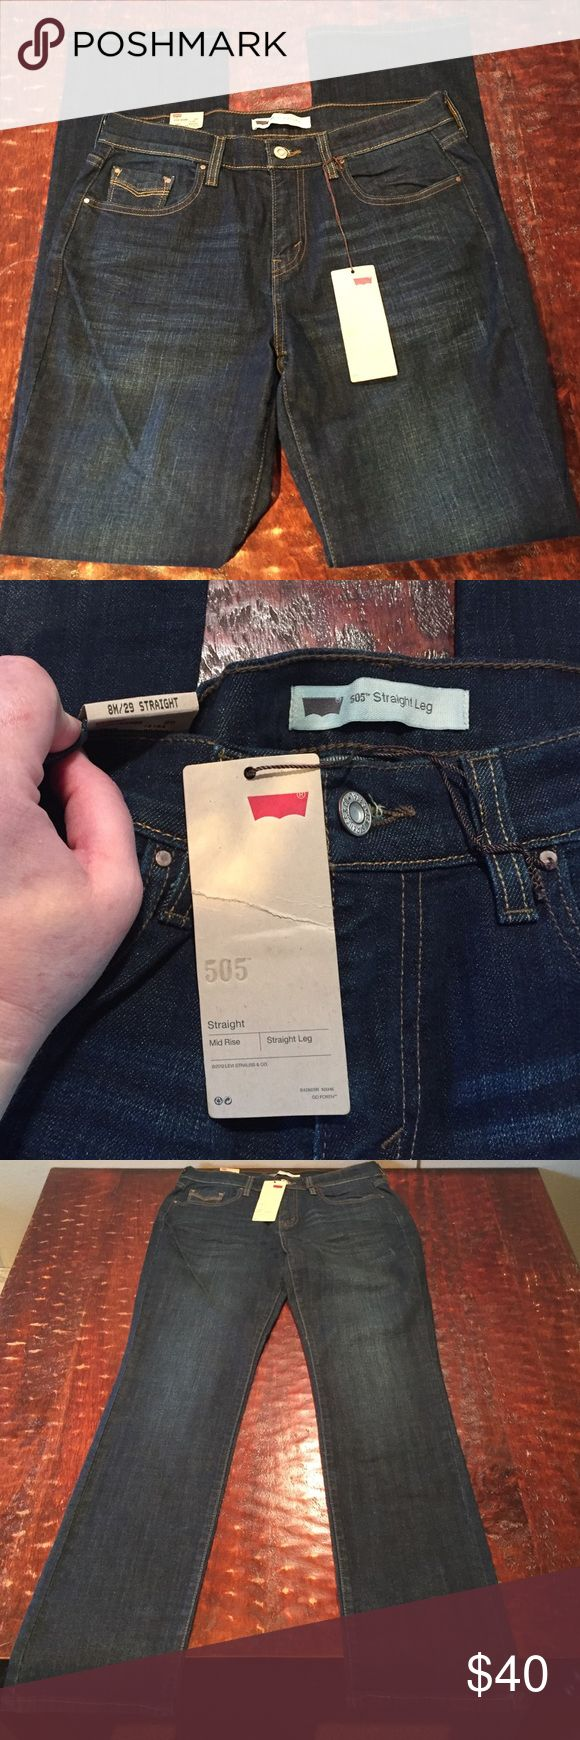 NWT Levis 505 Straight Leg Jean Size 8M/29 NWT Levi 505 Straight Leg Jean Size 8M/29. Comes from a Smoke Free/Feline Friendly Home. Any questions, just ask. Offers Always Welcome. Levi's Jeans Straight Leg